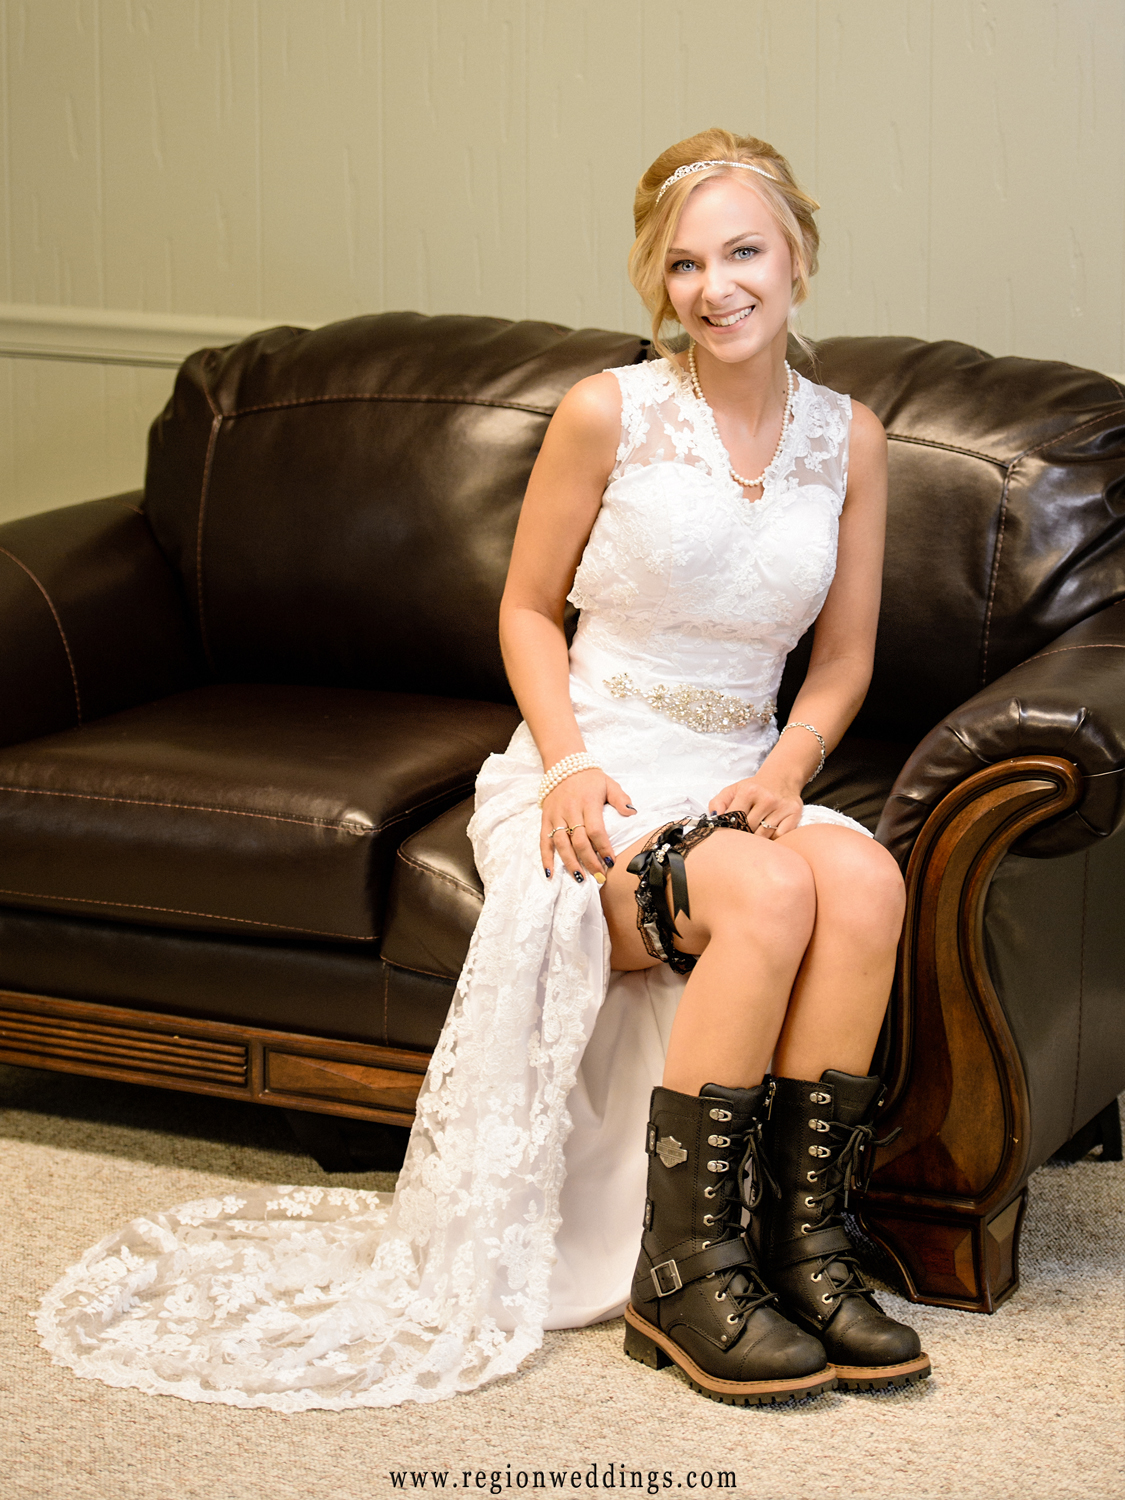 Bride shows off her Harley Davidson garter and boots.